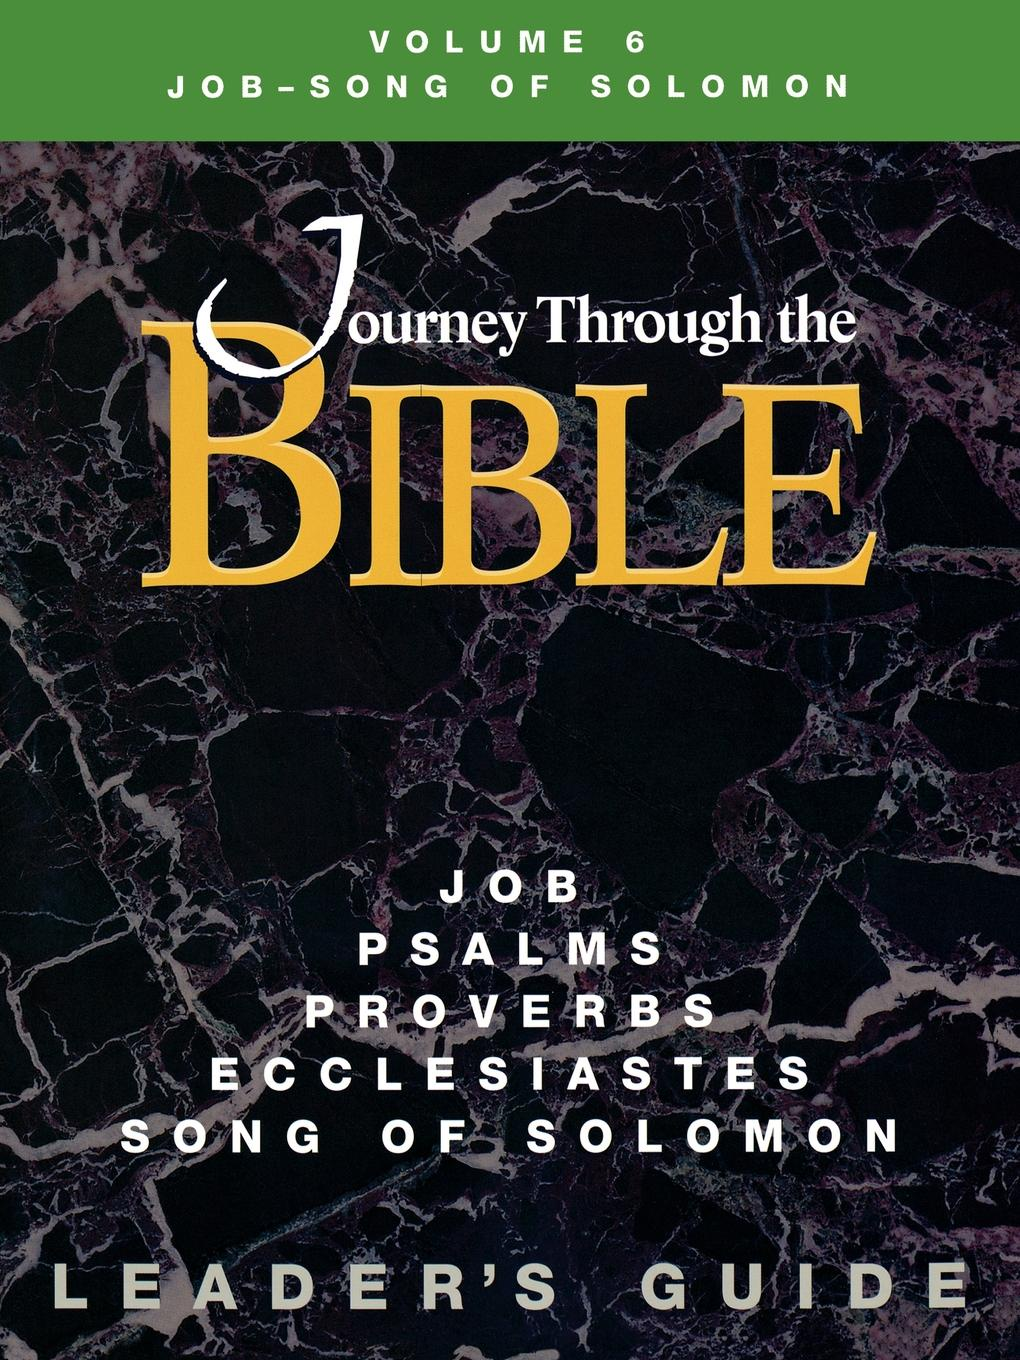 Kathleen Farmer Journey Through the Bible Volume 6 Job-Song of Solomon Leader's Guide ivan secret the randy rabbit of israel the real meaning of the song of solomon